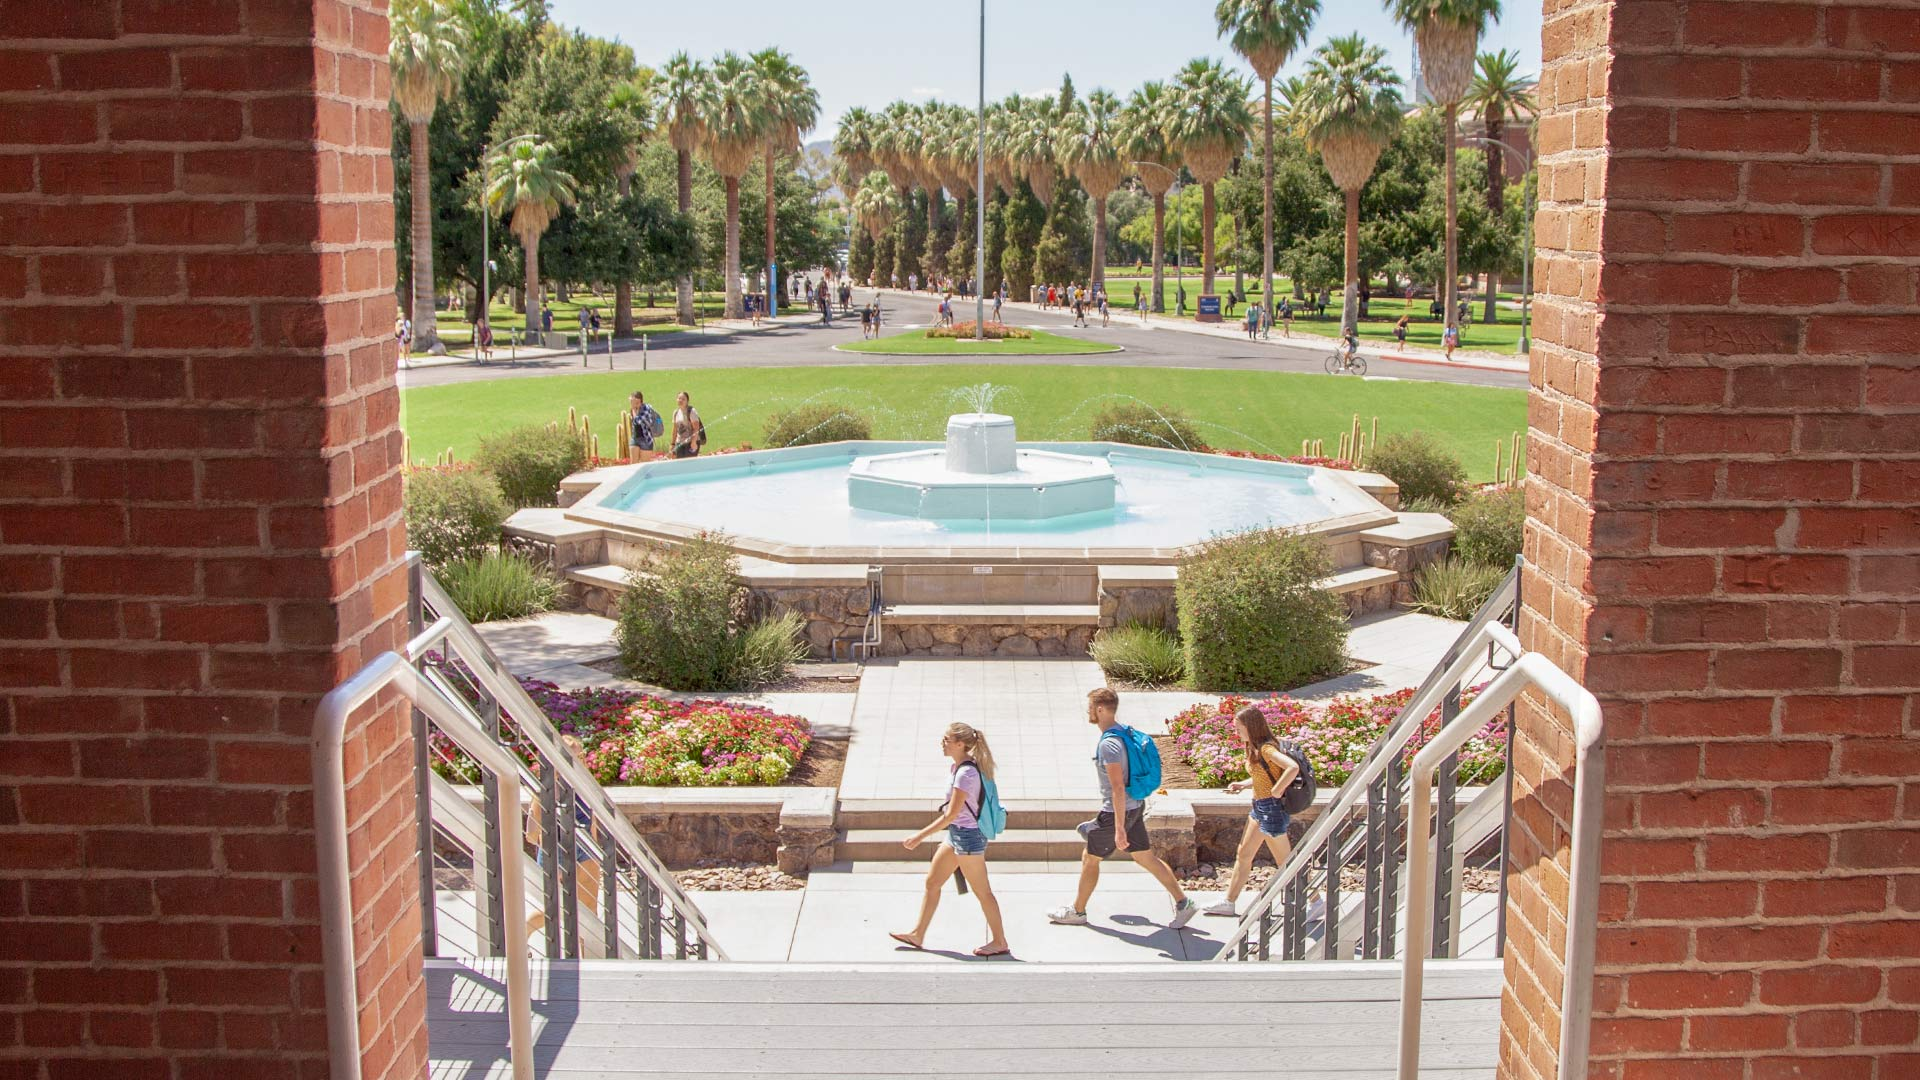 Students walk near the fountain at Old Main on the University of Arizona campus. From August 2019.